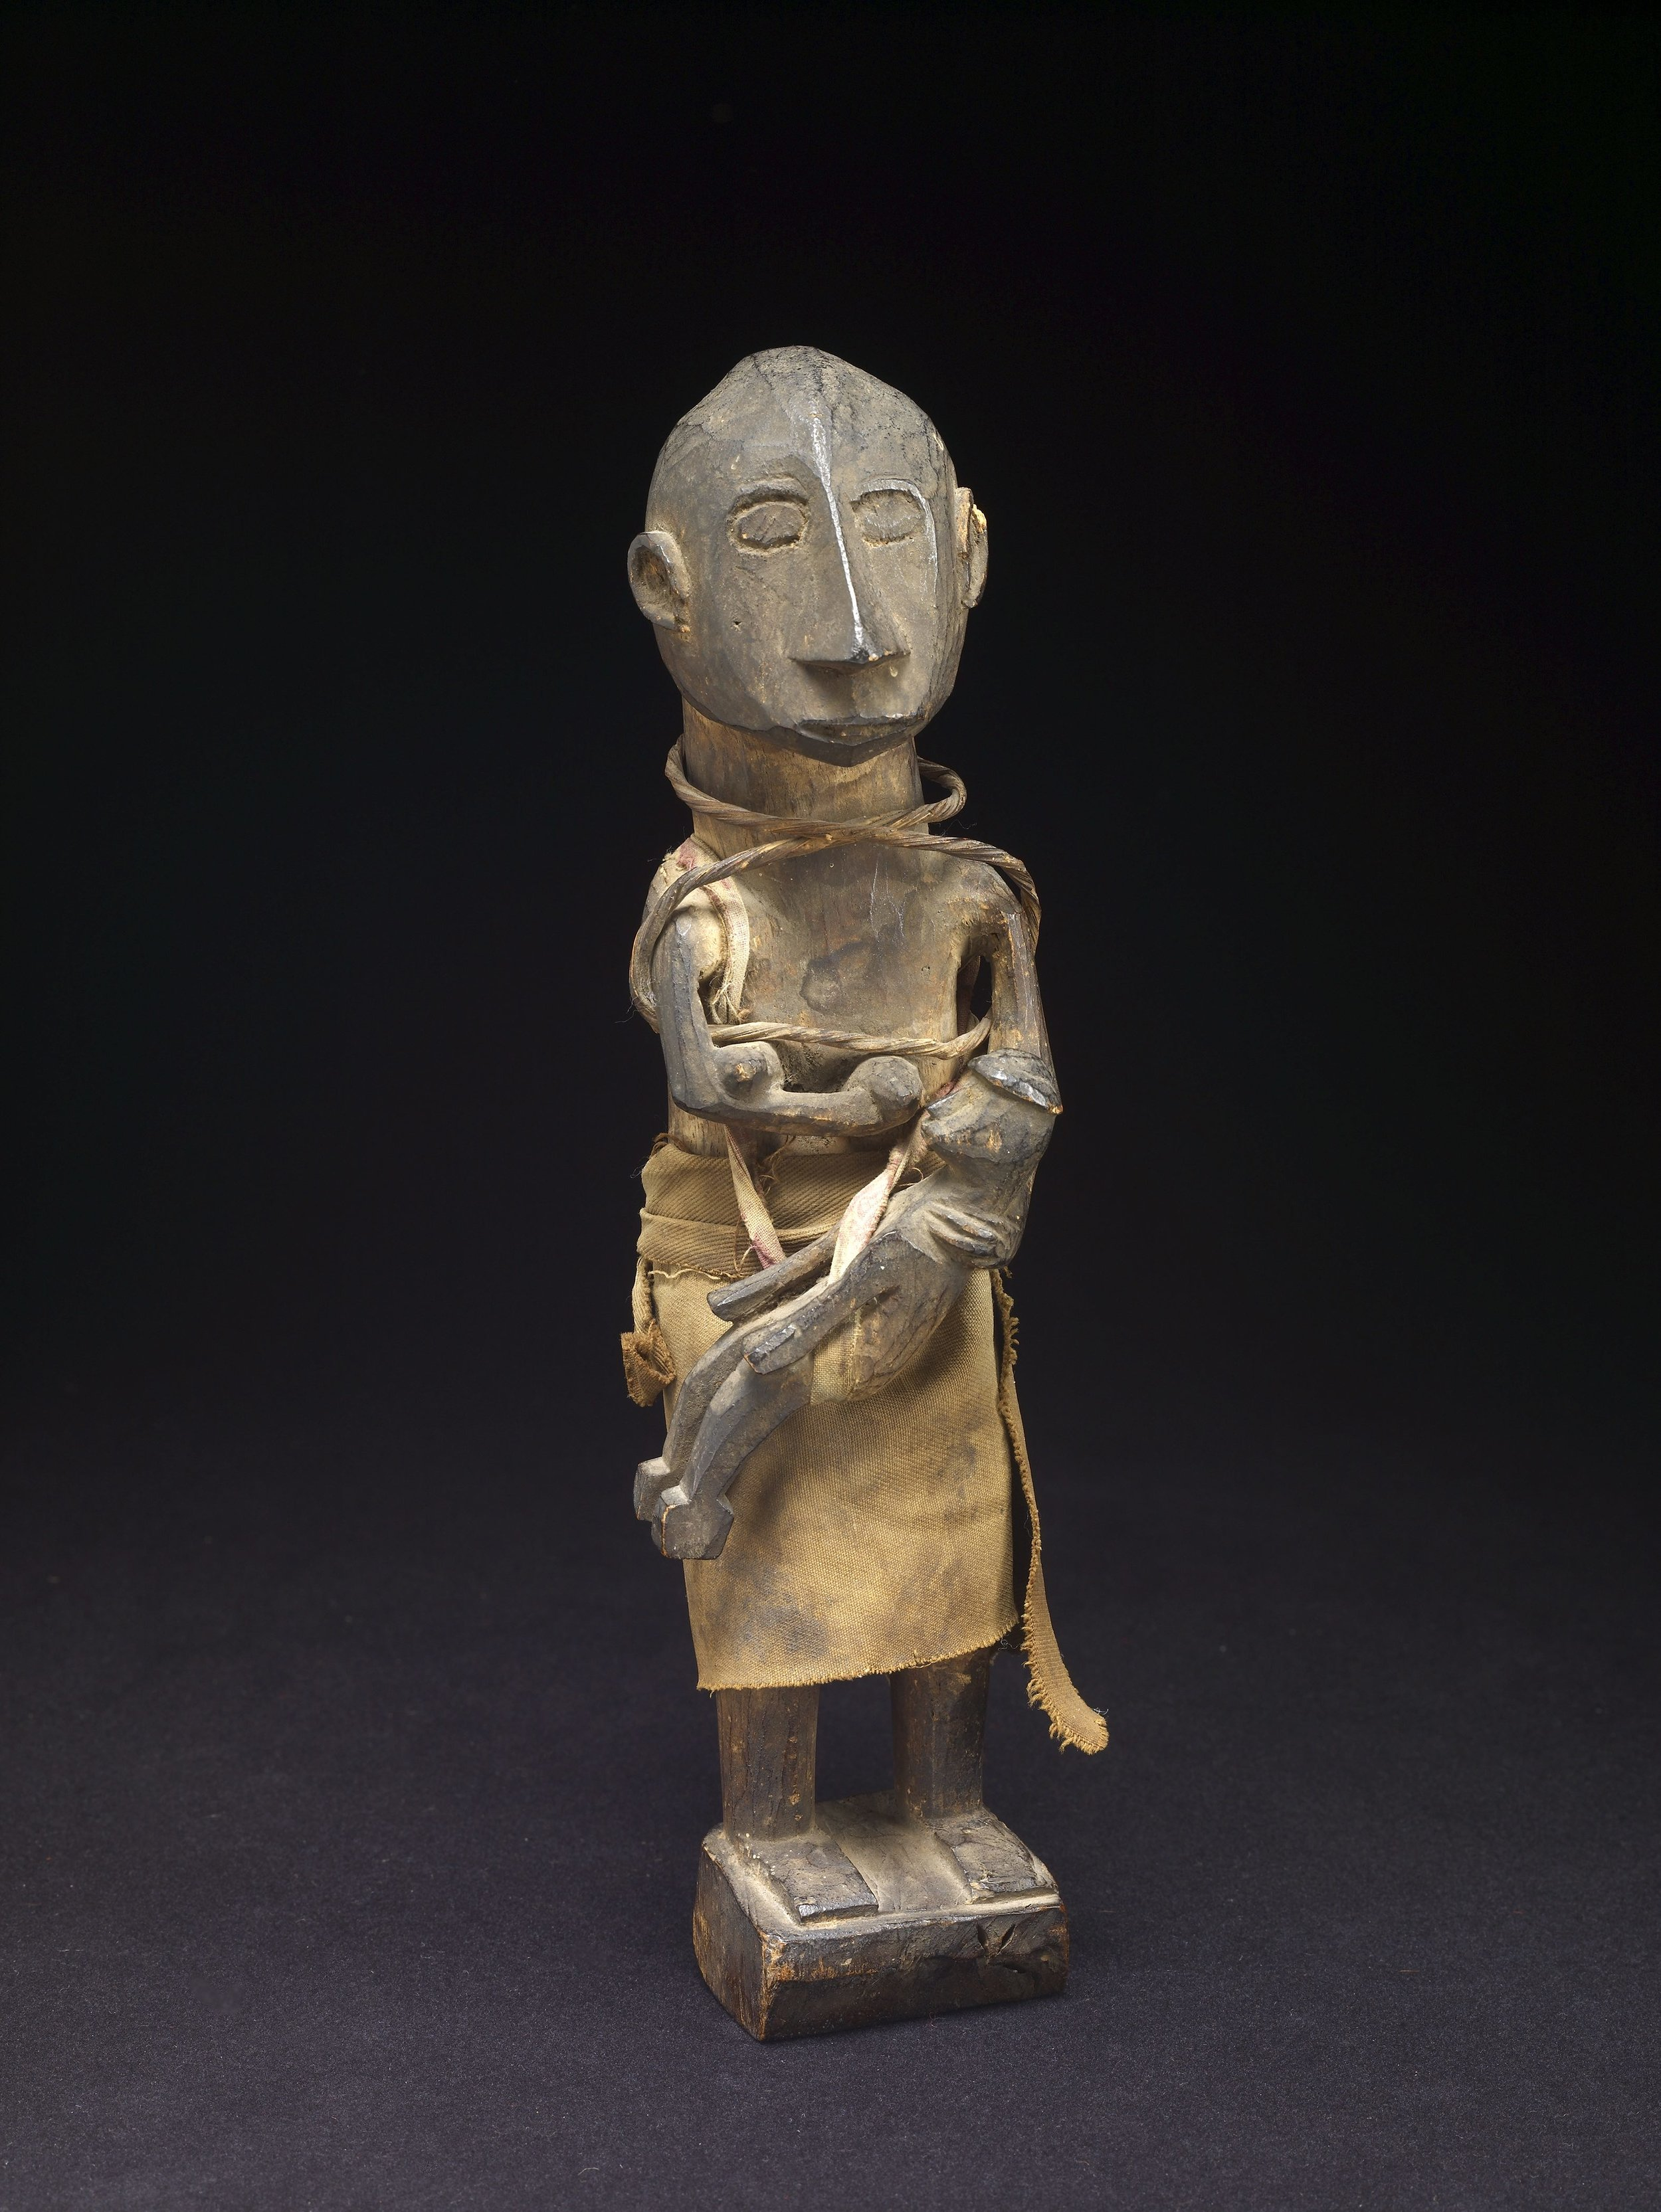 Hanging Ancestor Figure of Mother with Child | Atauro © de Young | Fine Arts Museums of San Francisco